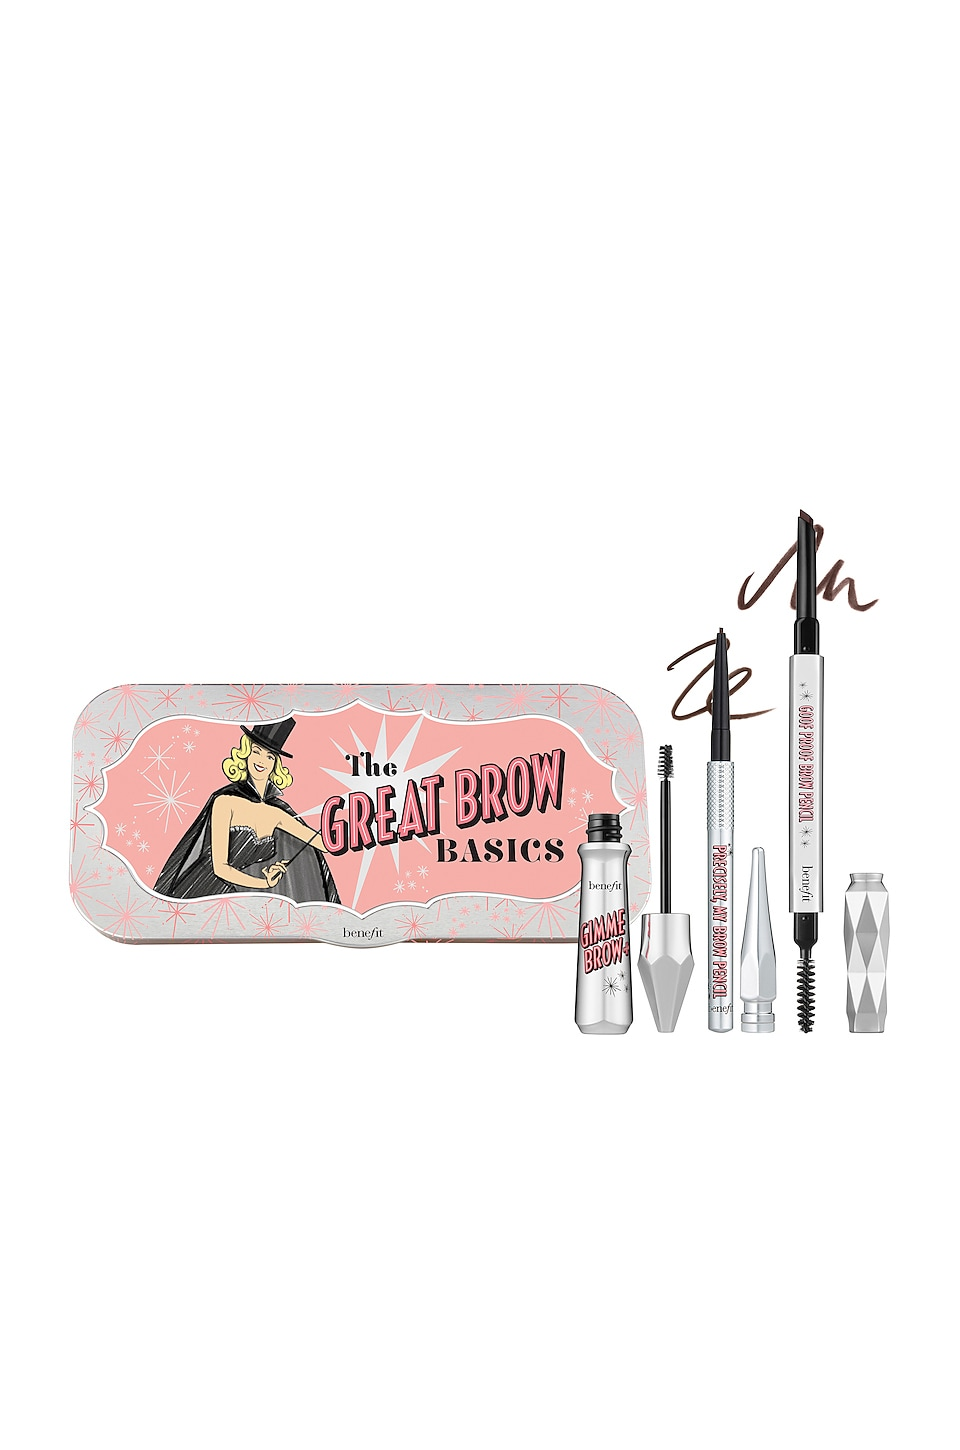 Benefit Cosmetics The Great Brow Basics in 05 Warm Black Brown